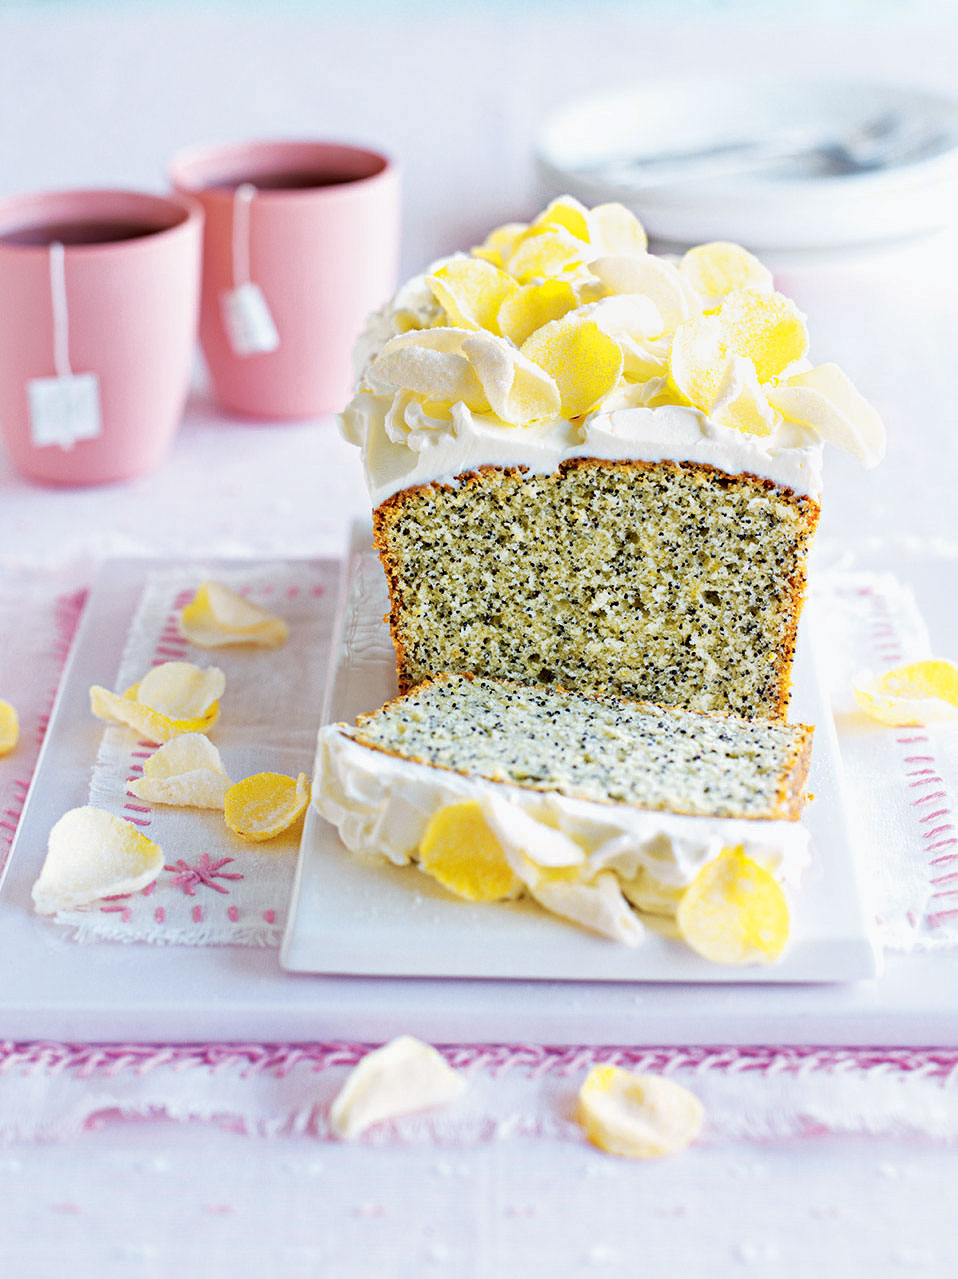 Lemon And Poppy Seed Loaf Cake With Cream Cheese Frosting Delicious Magazine